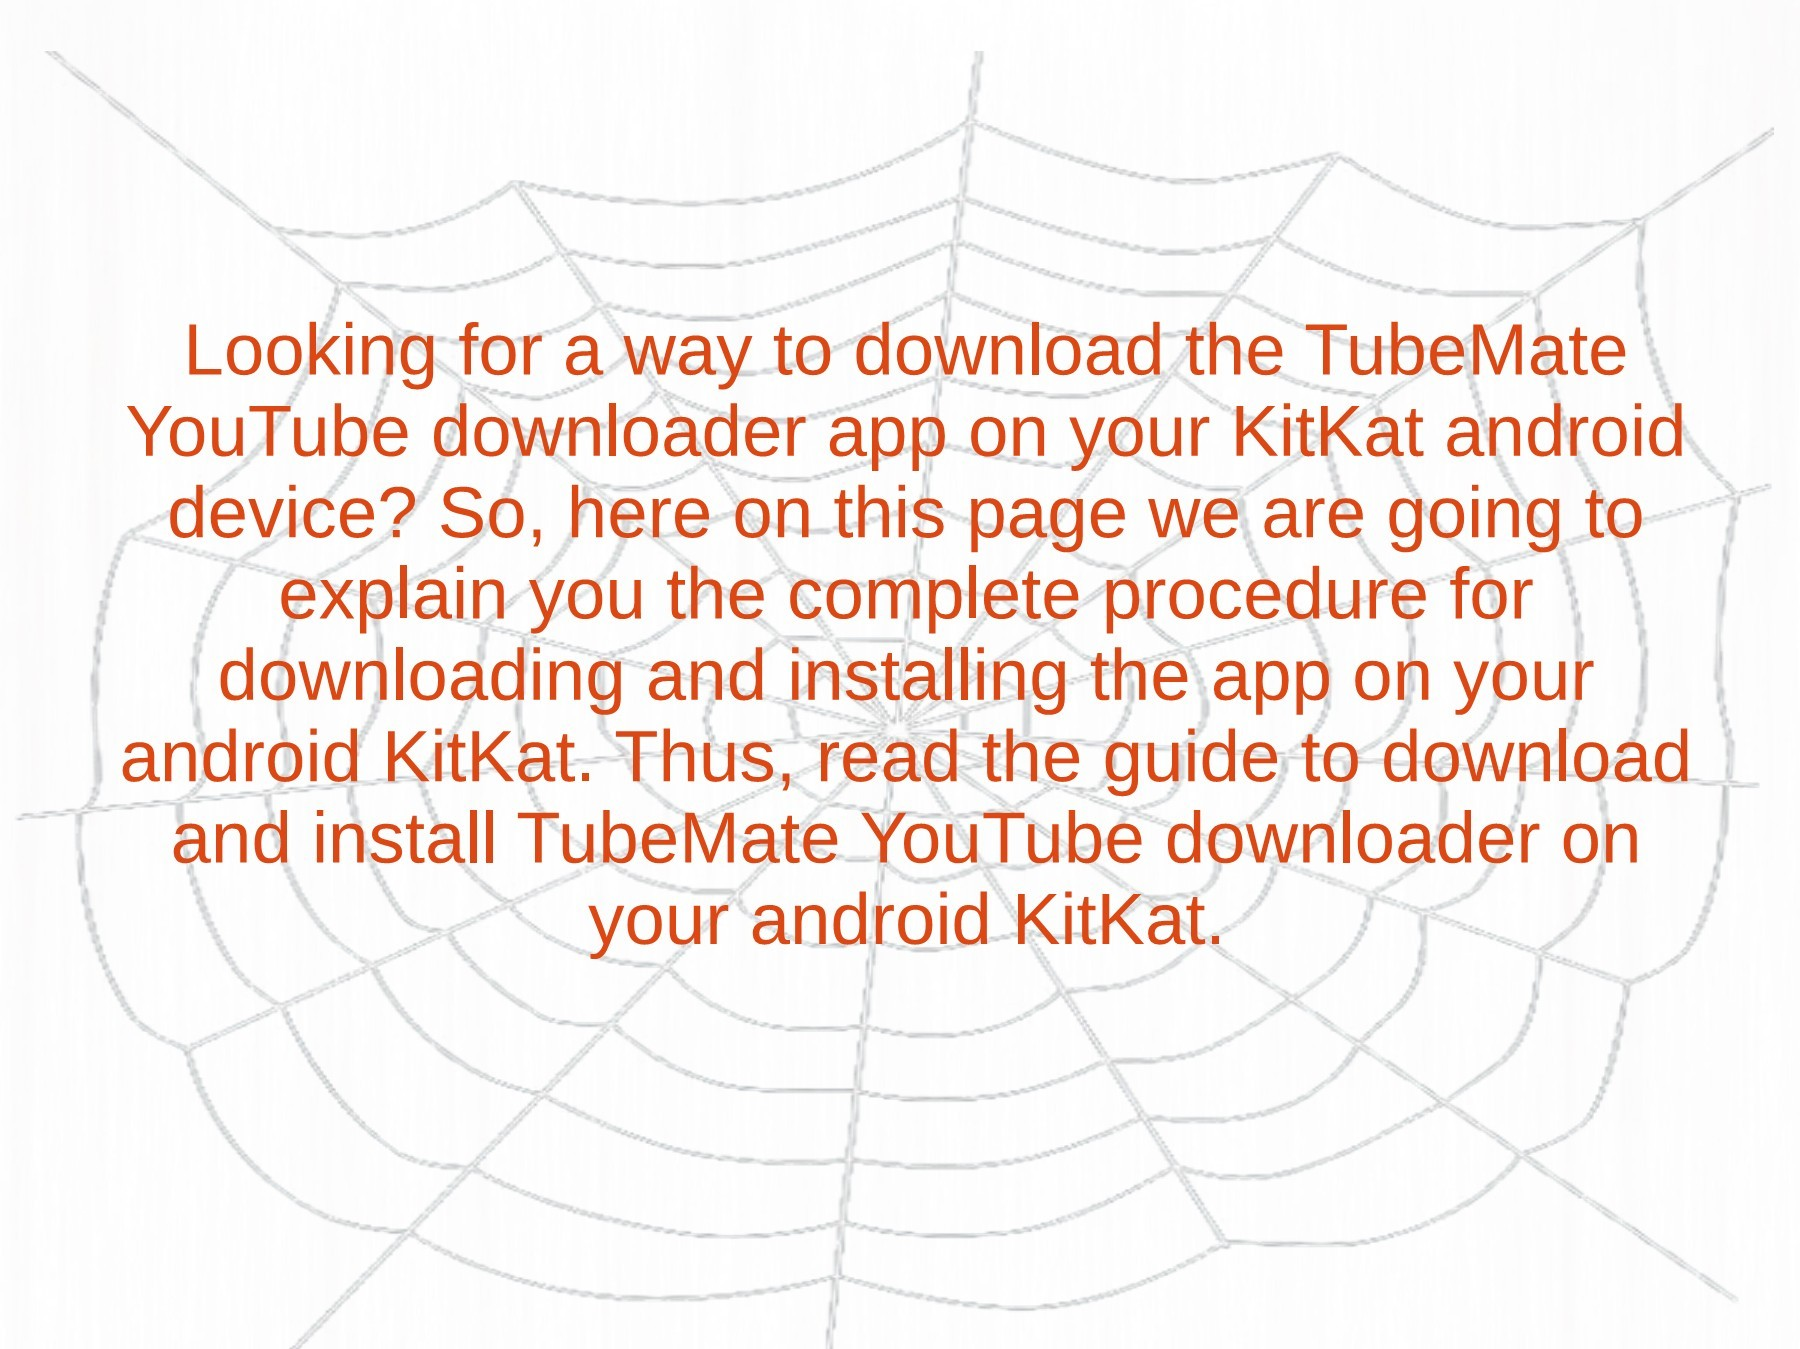 Download TubeMate on your Android KitKat device | PubHTML5